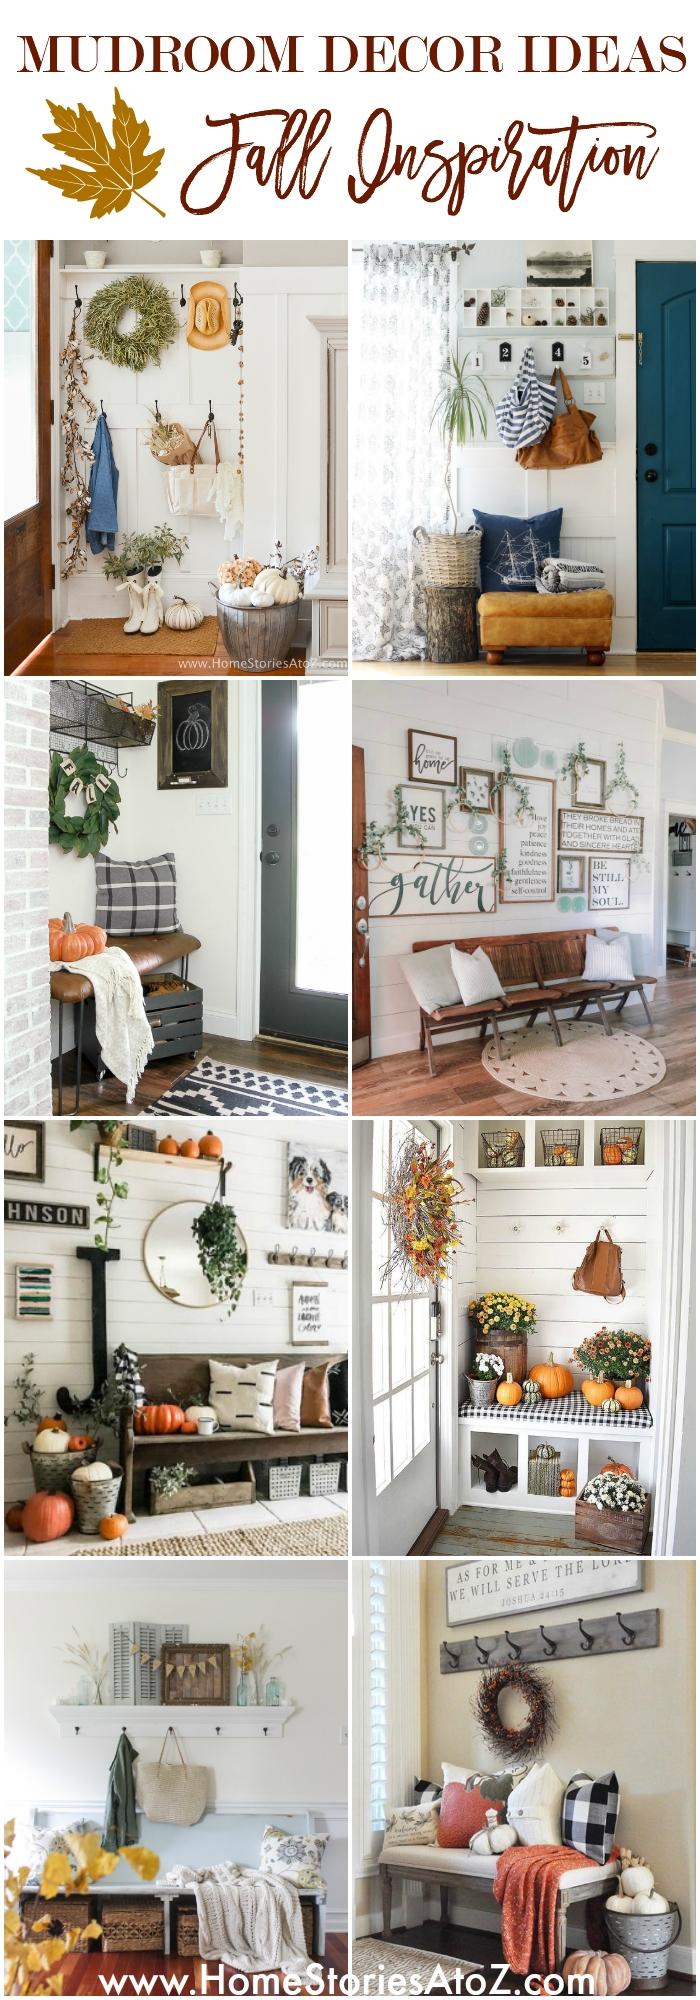 Mudroom Decor Ideas - Fall Inspiration for Your Home